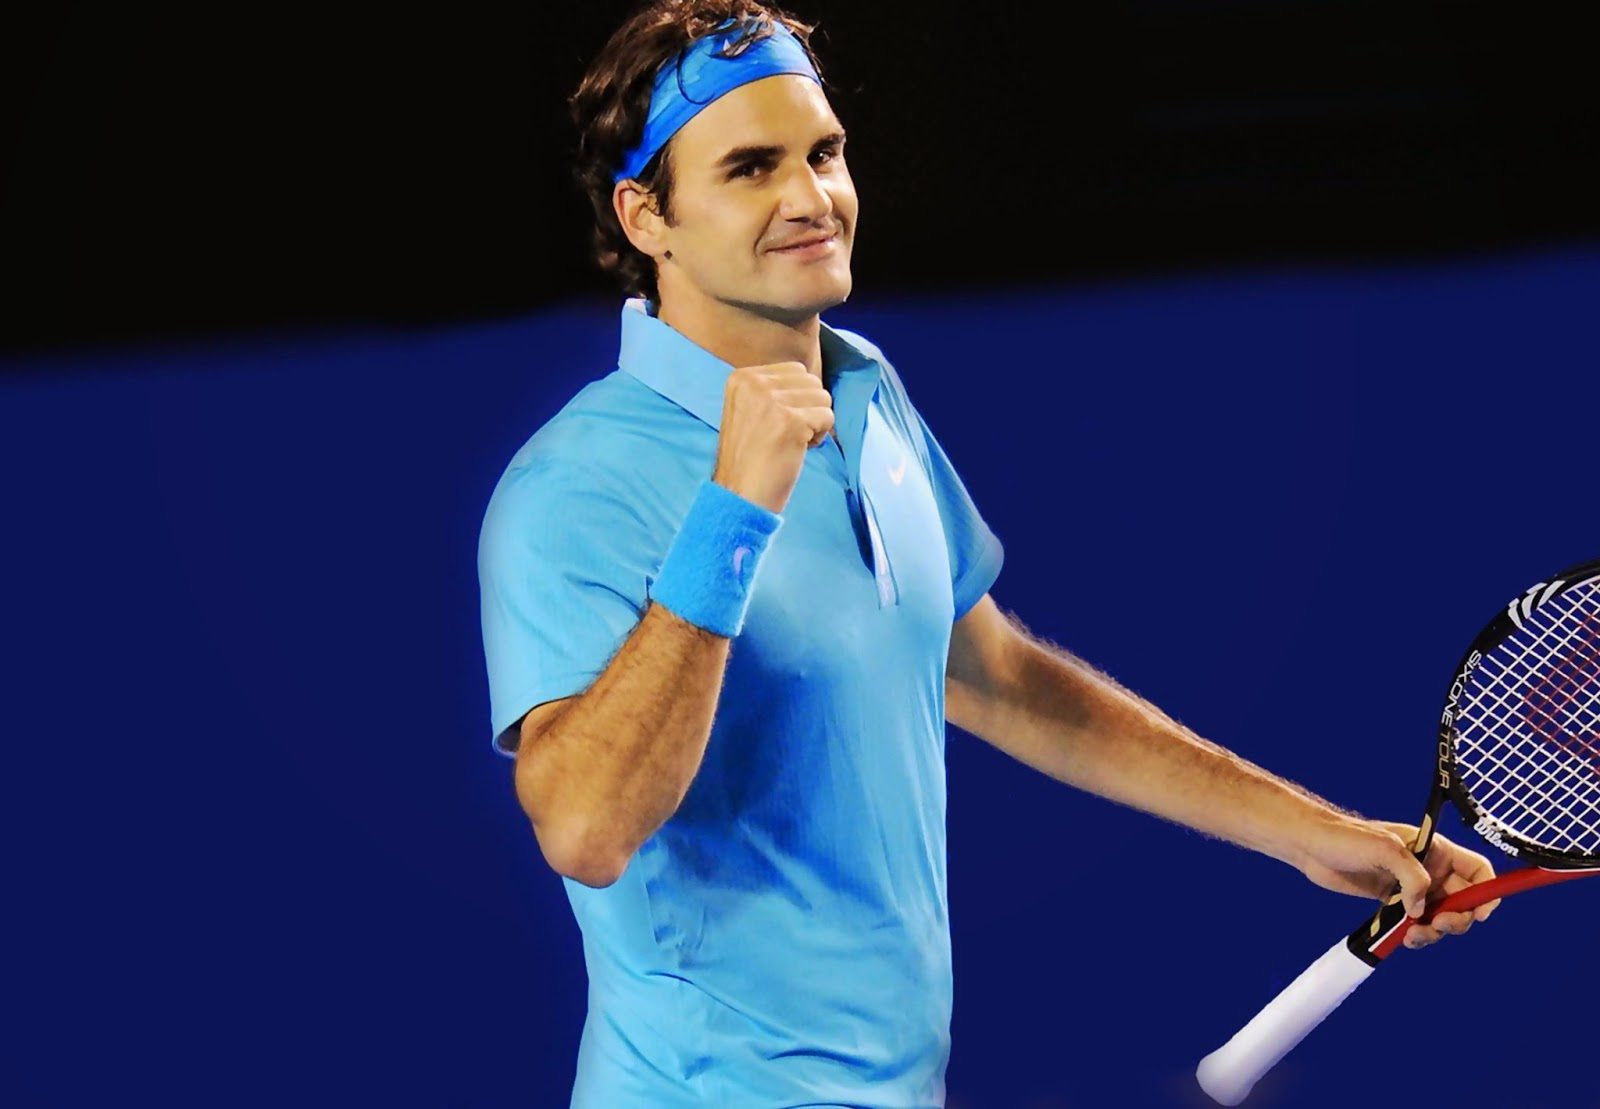 Roger Federer Hd: Roger Federer New HD Desktop Wallpaper's 2014